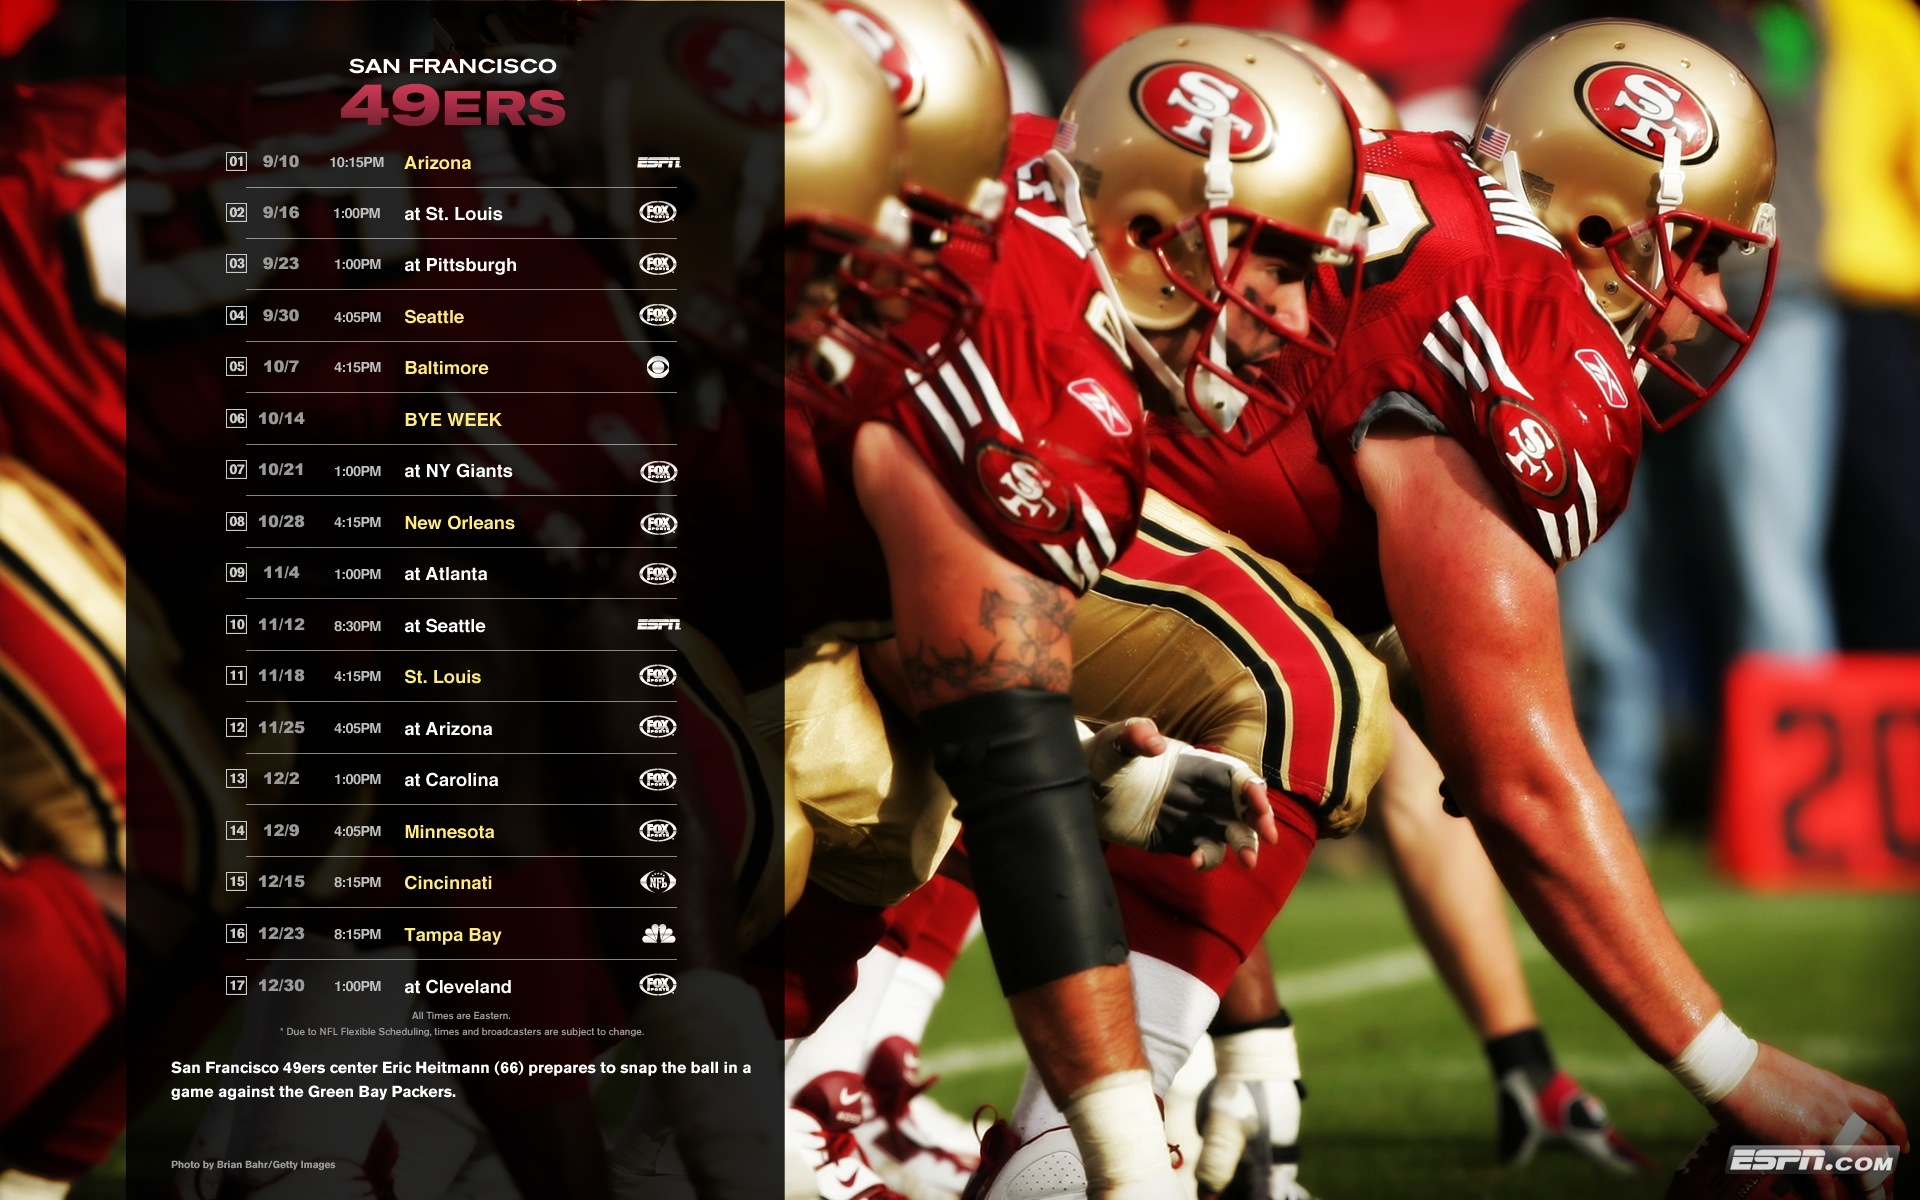 San Francisco 49ers 2013 Wallpaper Hd Wallpapers Fresh Gallery 1920x1200